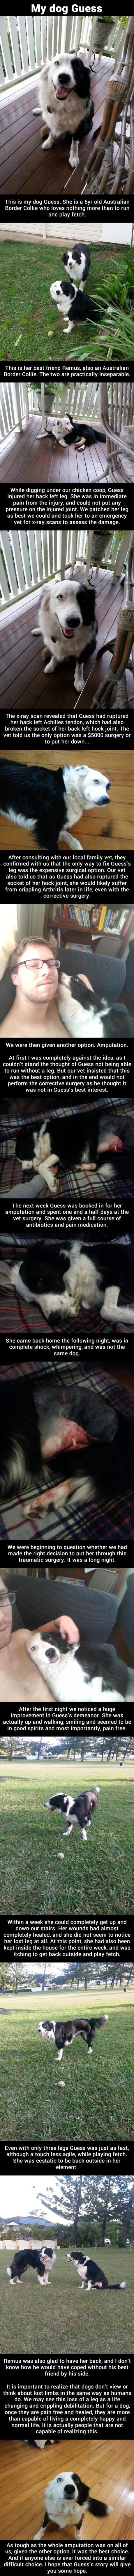 My dog Guess and the story of her leg amputation